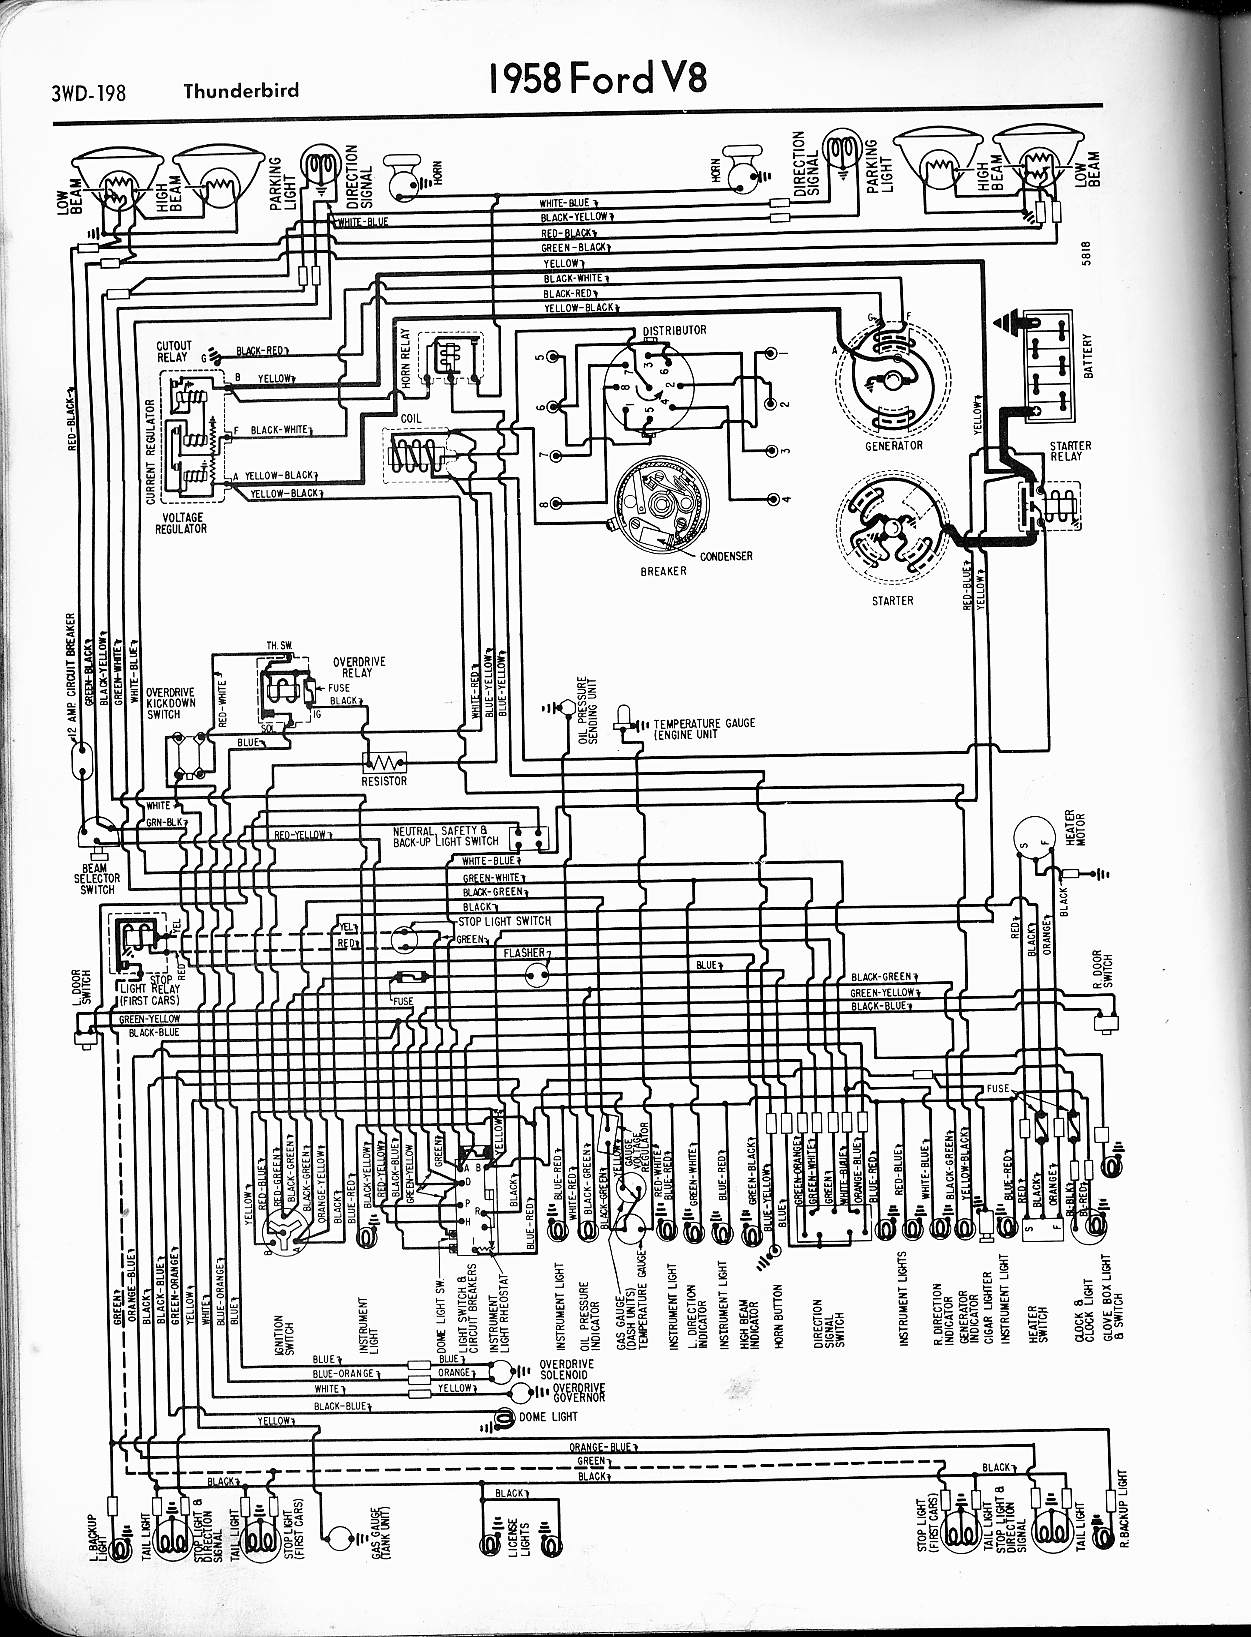 MWire5765 198 57 65 ford wiring diagrams ford car wiring diagrams at panicattacktreatment.co